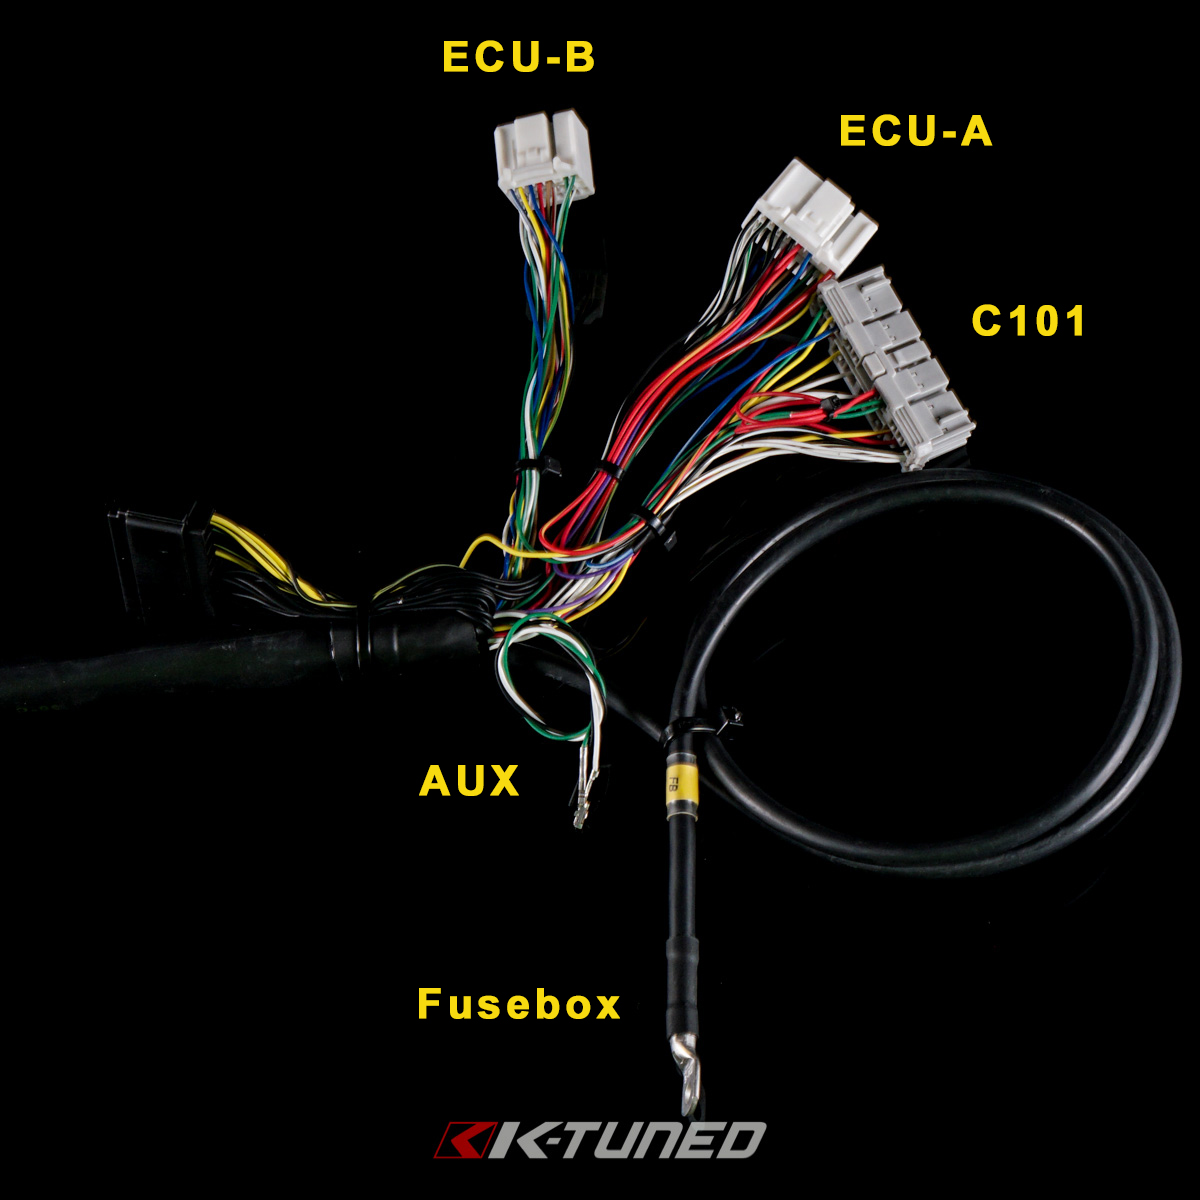 KTH 204 ENG_017 k series tucked engine harness rsx tucked wire harness at suagrazia.org